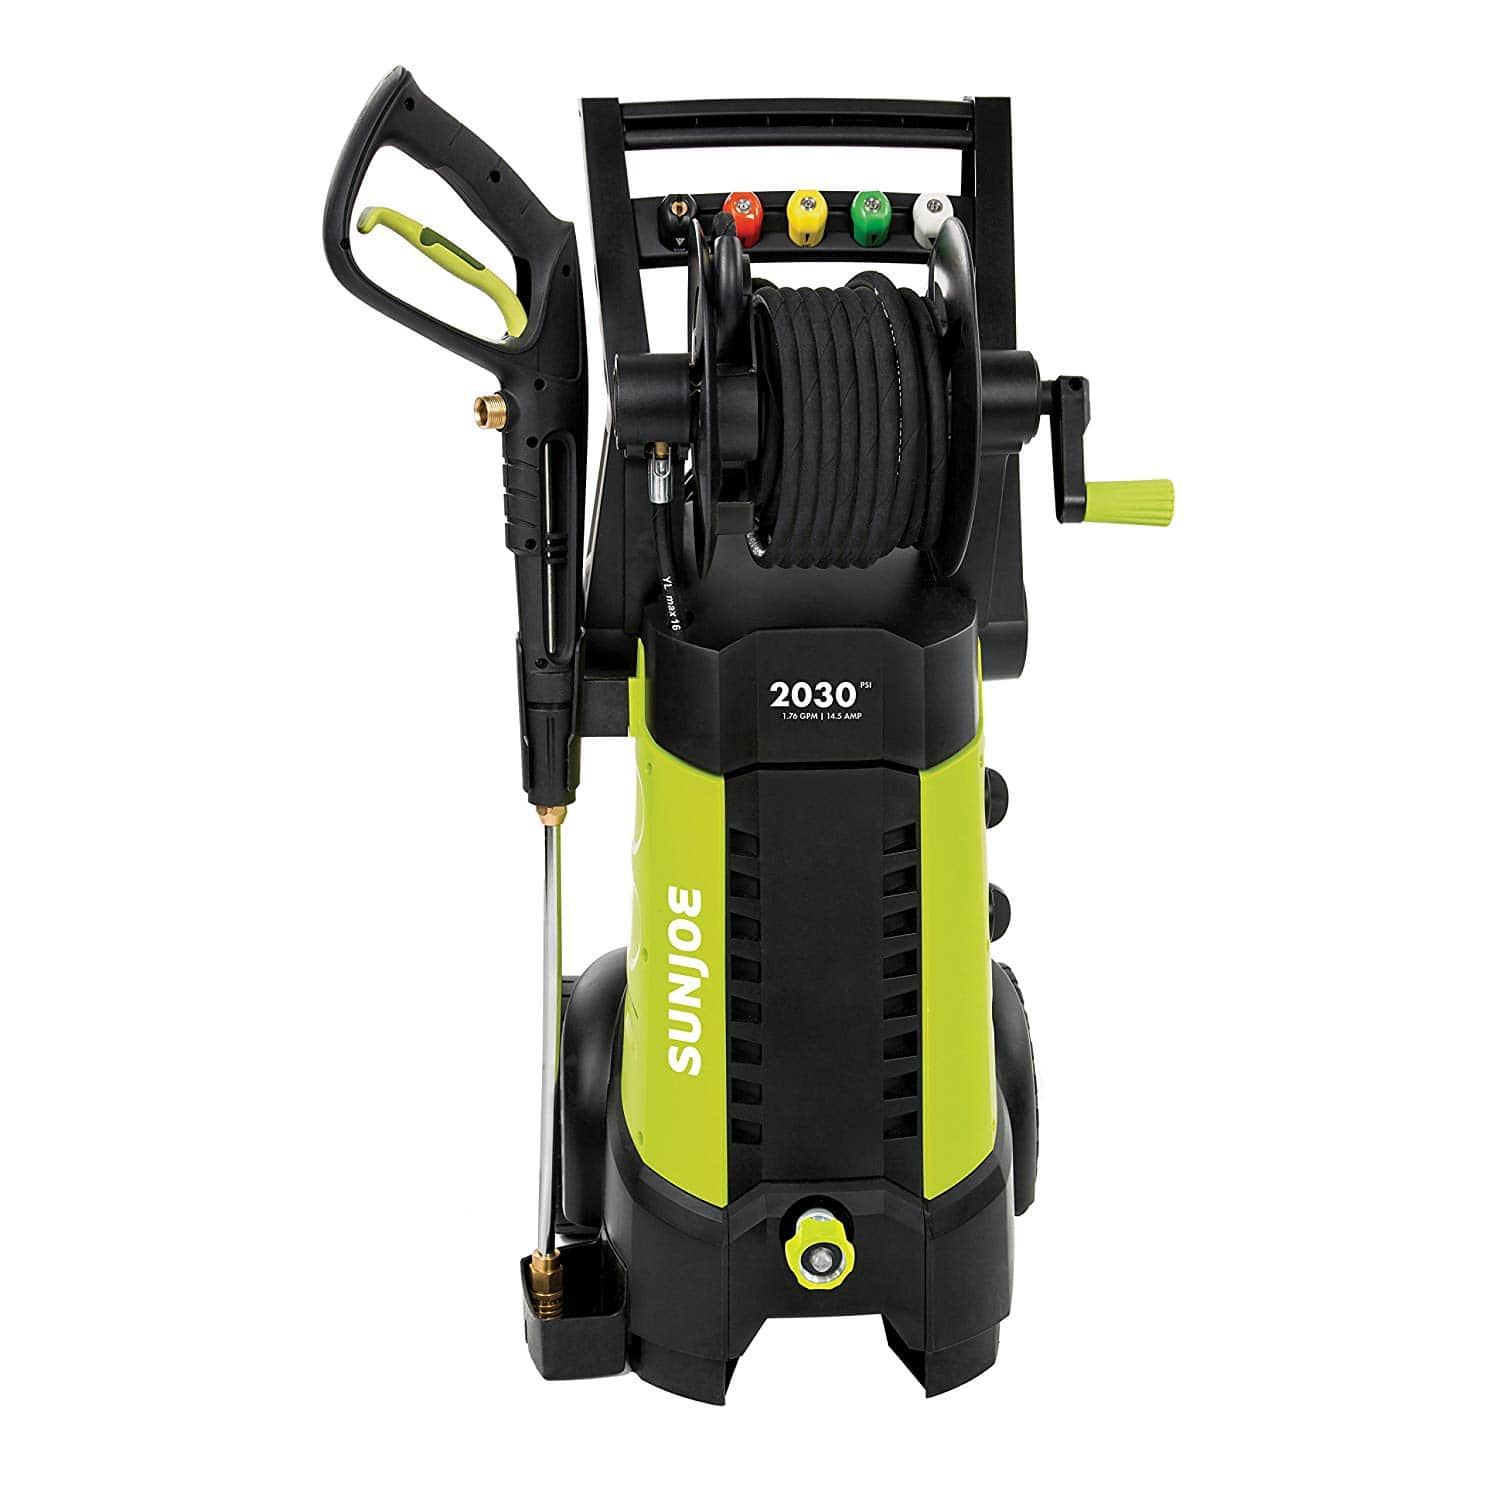 spx3001 2030 psi 1.76 gpm 14.5 amp electric pressure washer with